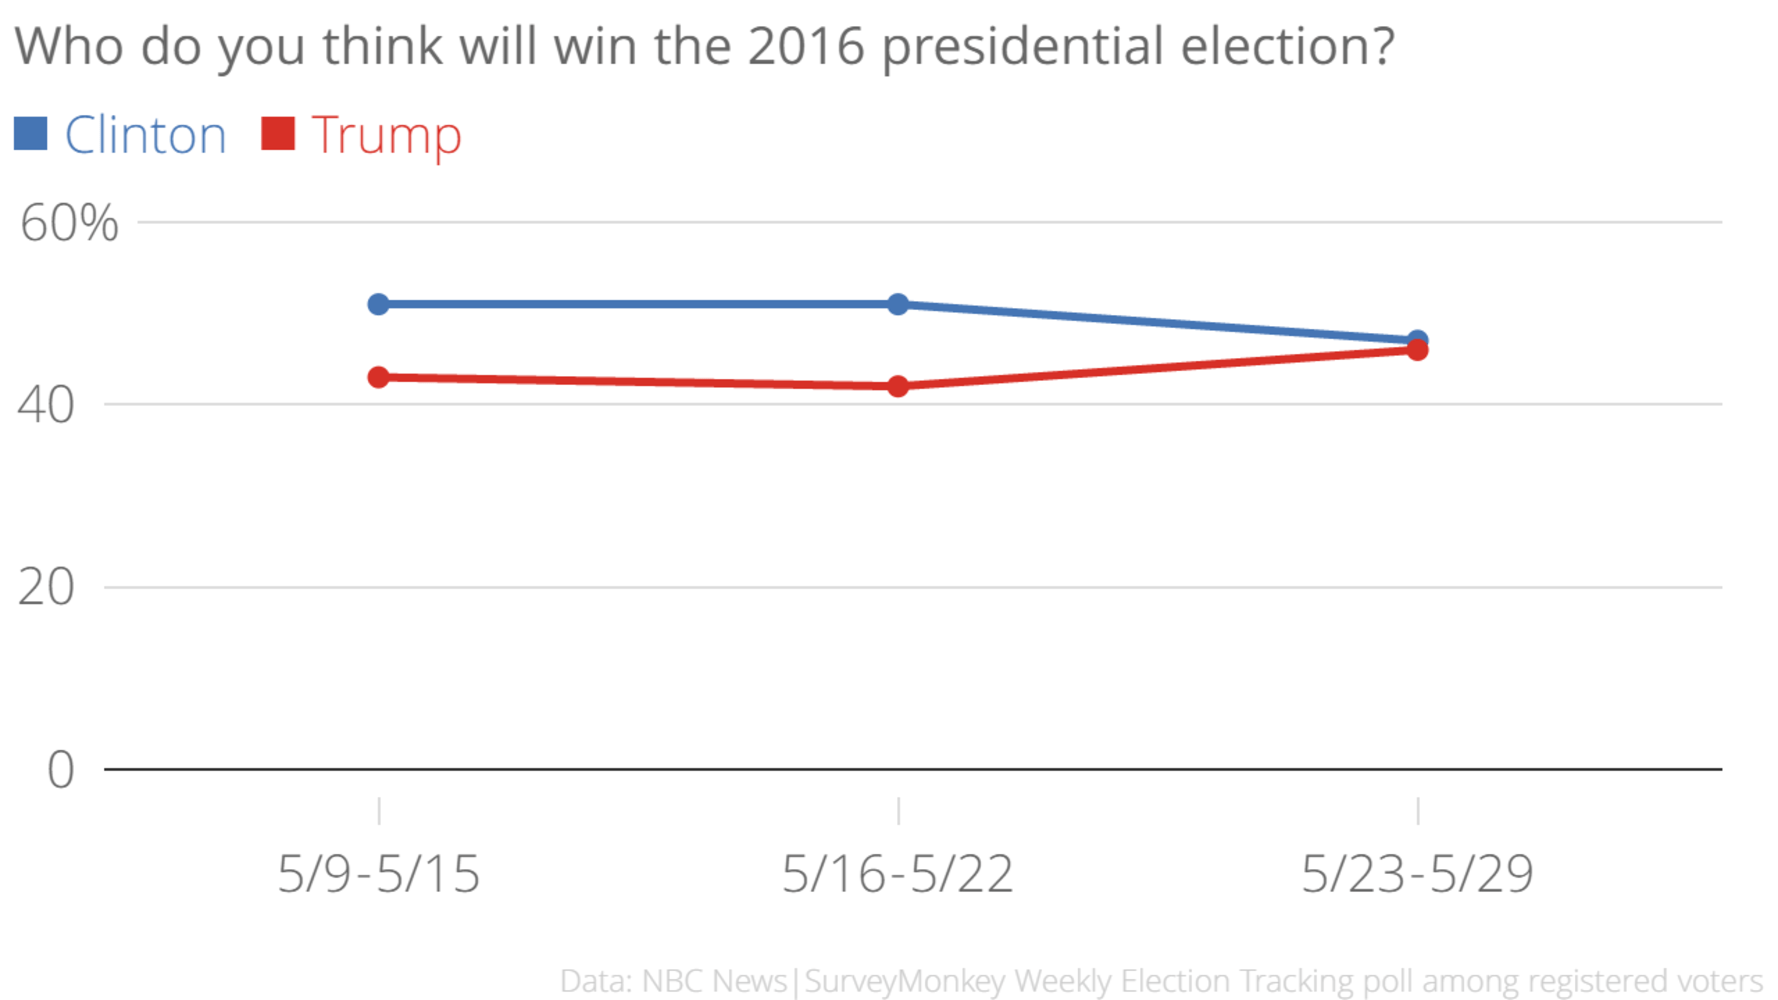 Split on who they think will win 2016 presidential election nbc news